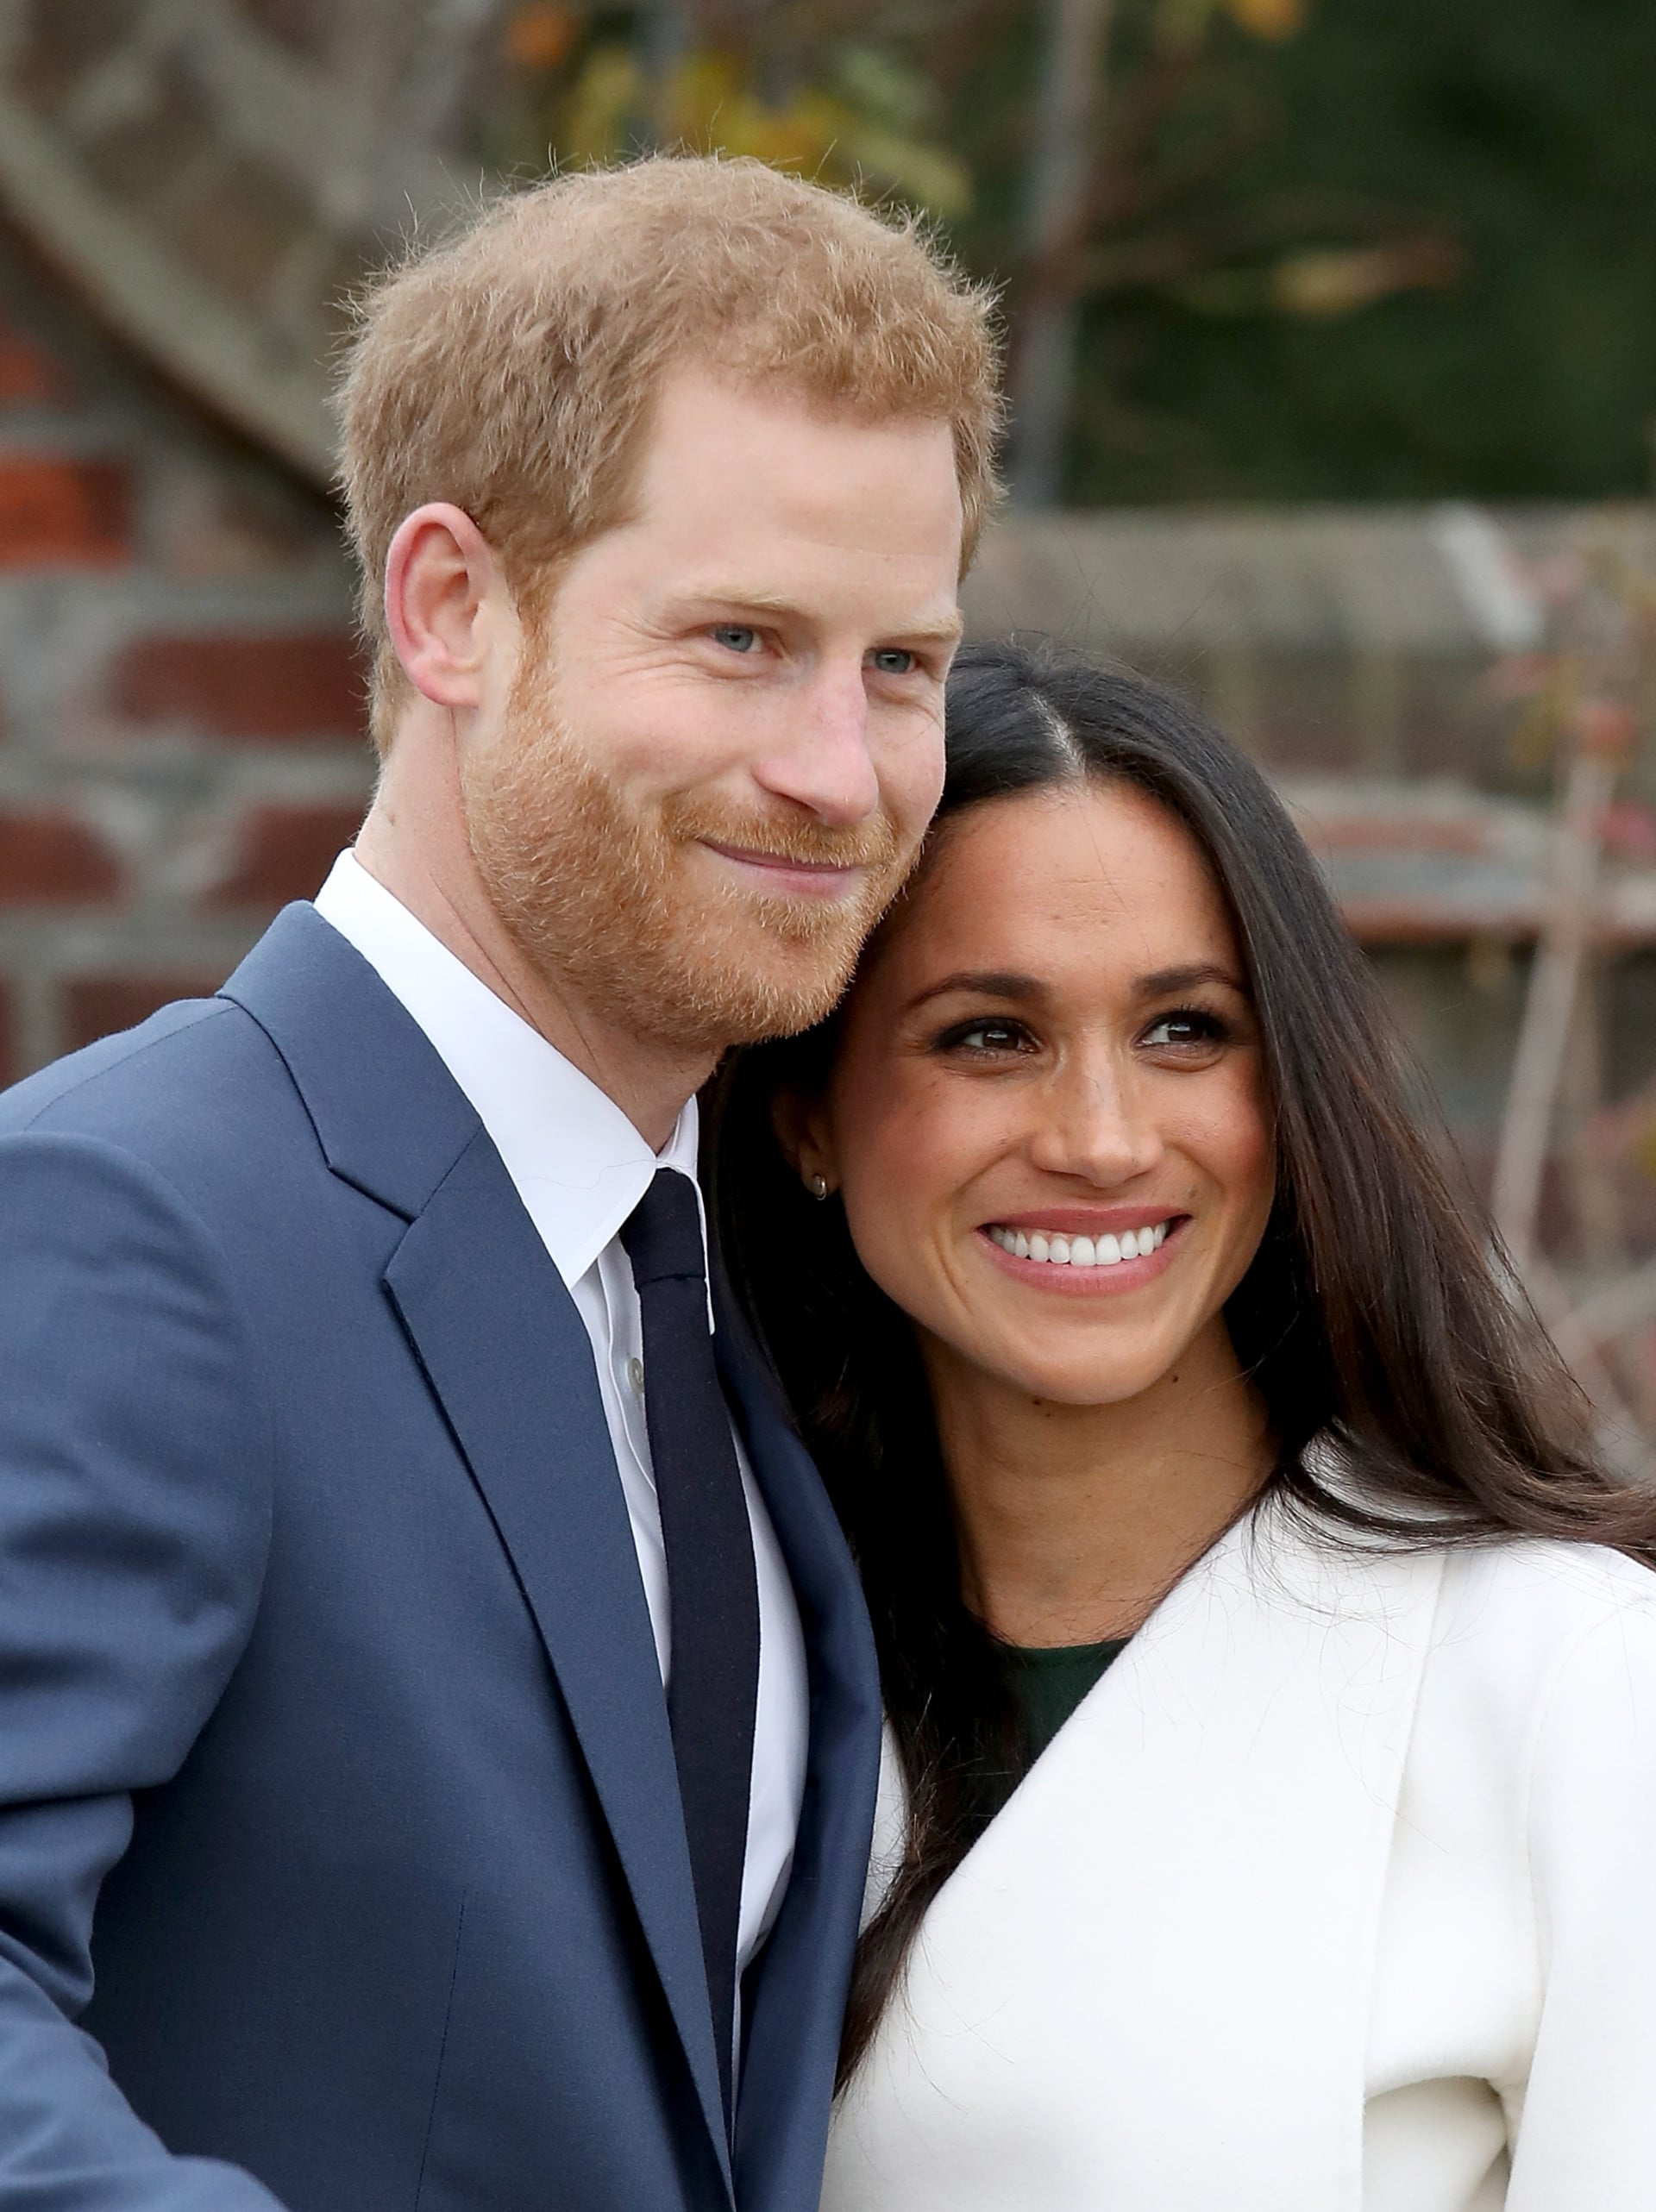 Meghan Markle and Prince Harry's wedding: your guide to the big day